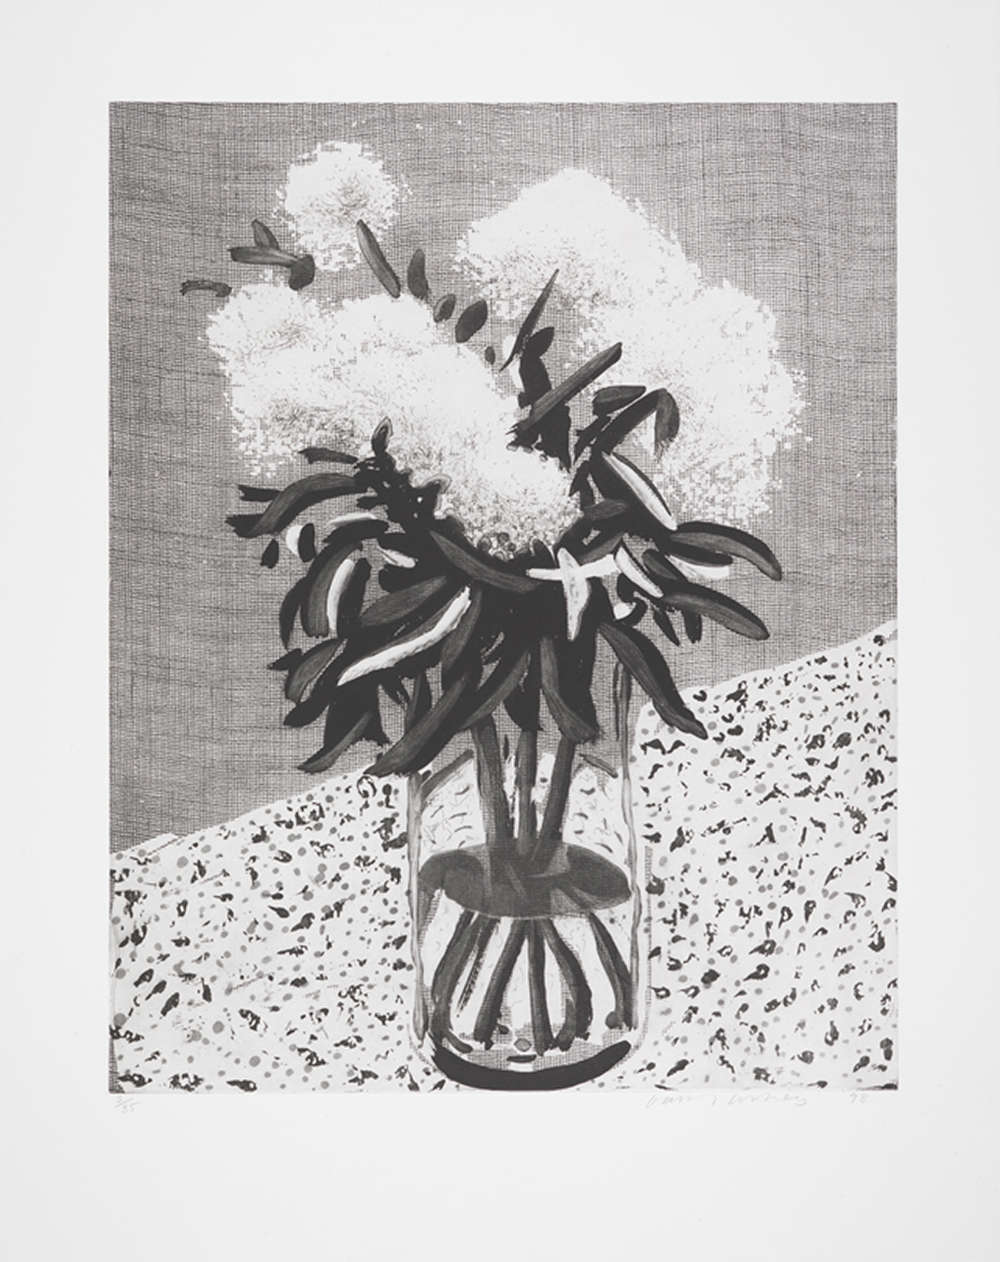 David Hockney, Peonies in a Glass Vase, 1998. Etching. Signed in pencil and numbered from the edition of 35. Printed by the artist and Maurice Payne, Los Angeles. Published by the artist. 96.77 x 76.45 cm